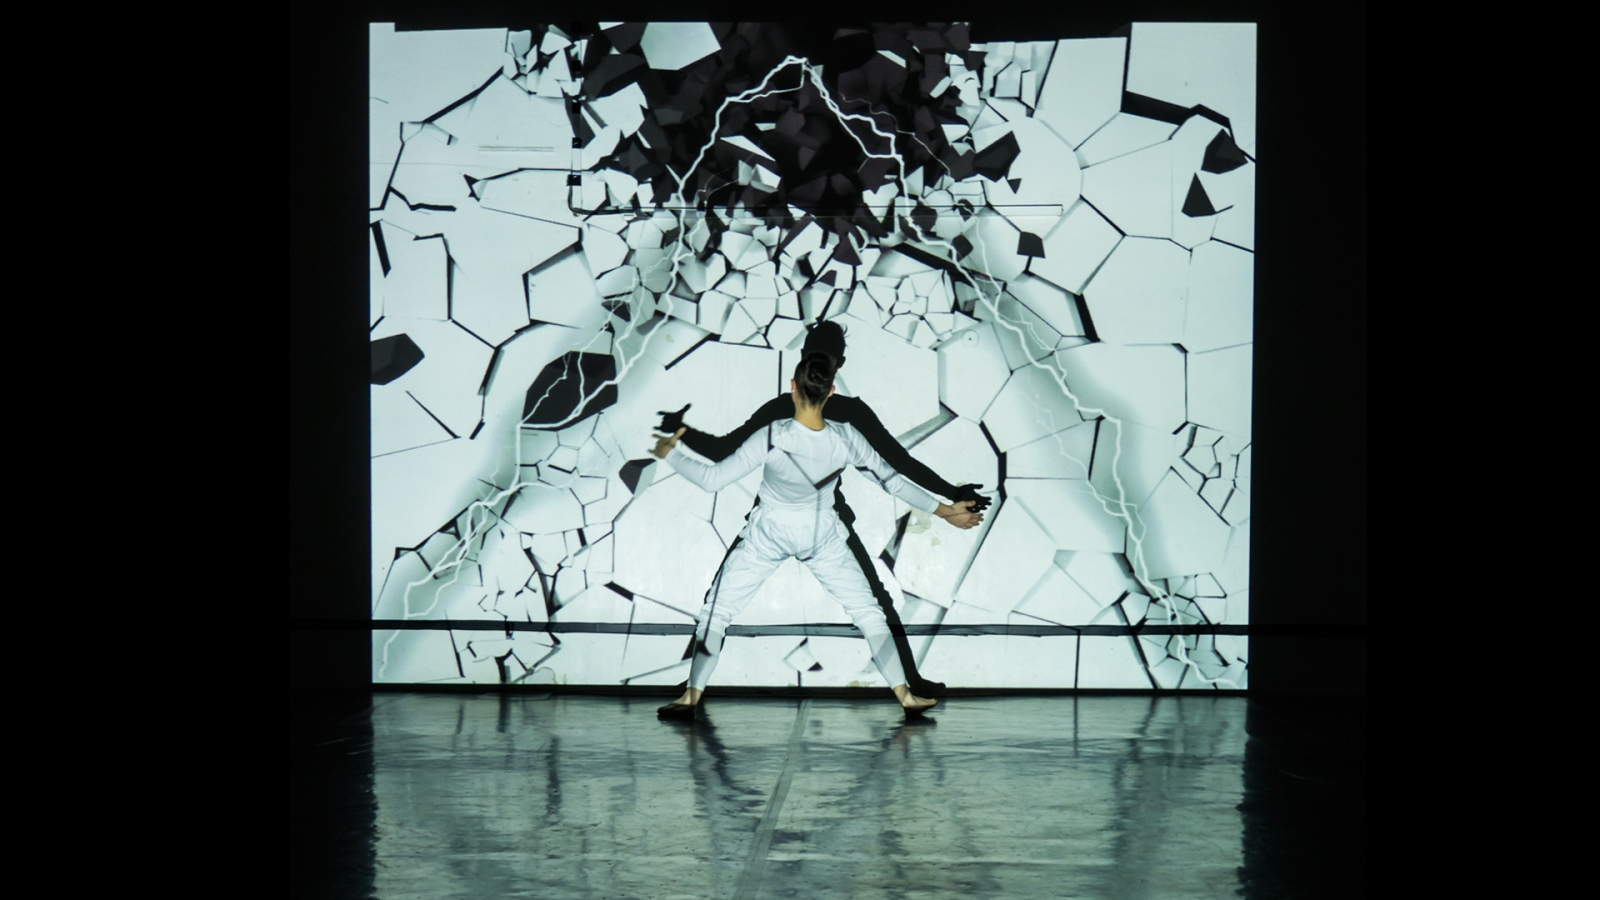 acrobat performing in projection mapping performance pantokine